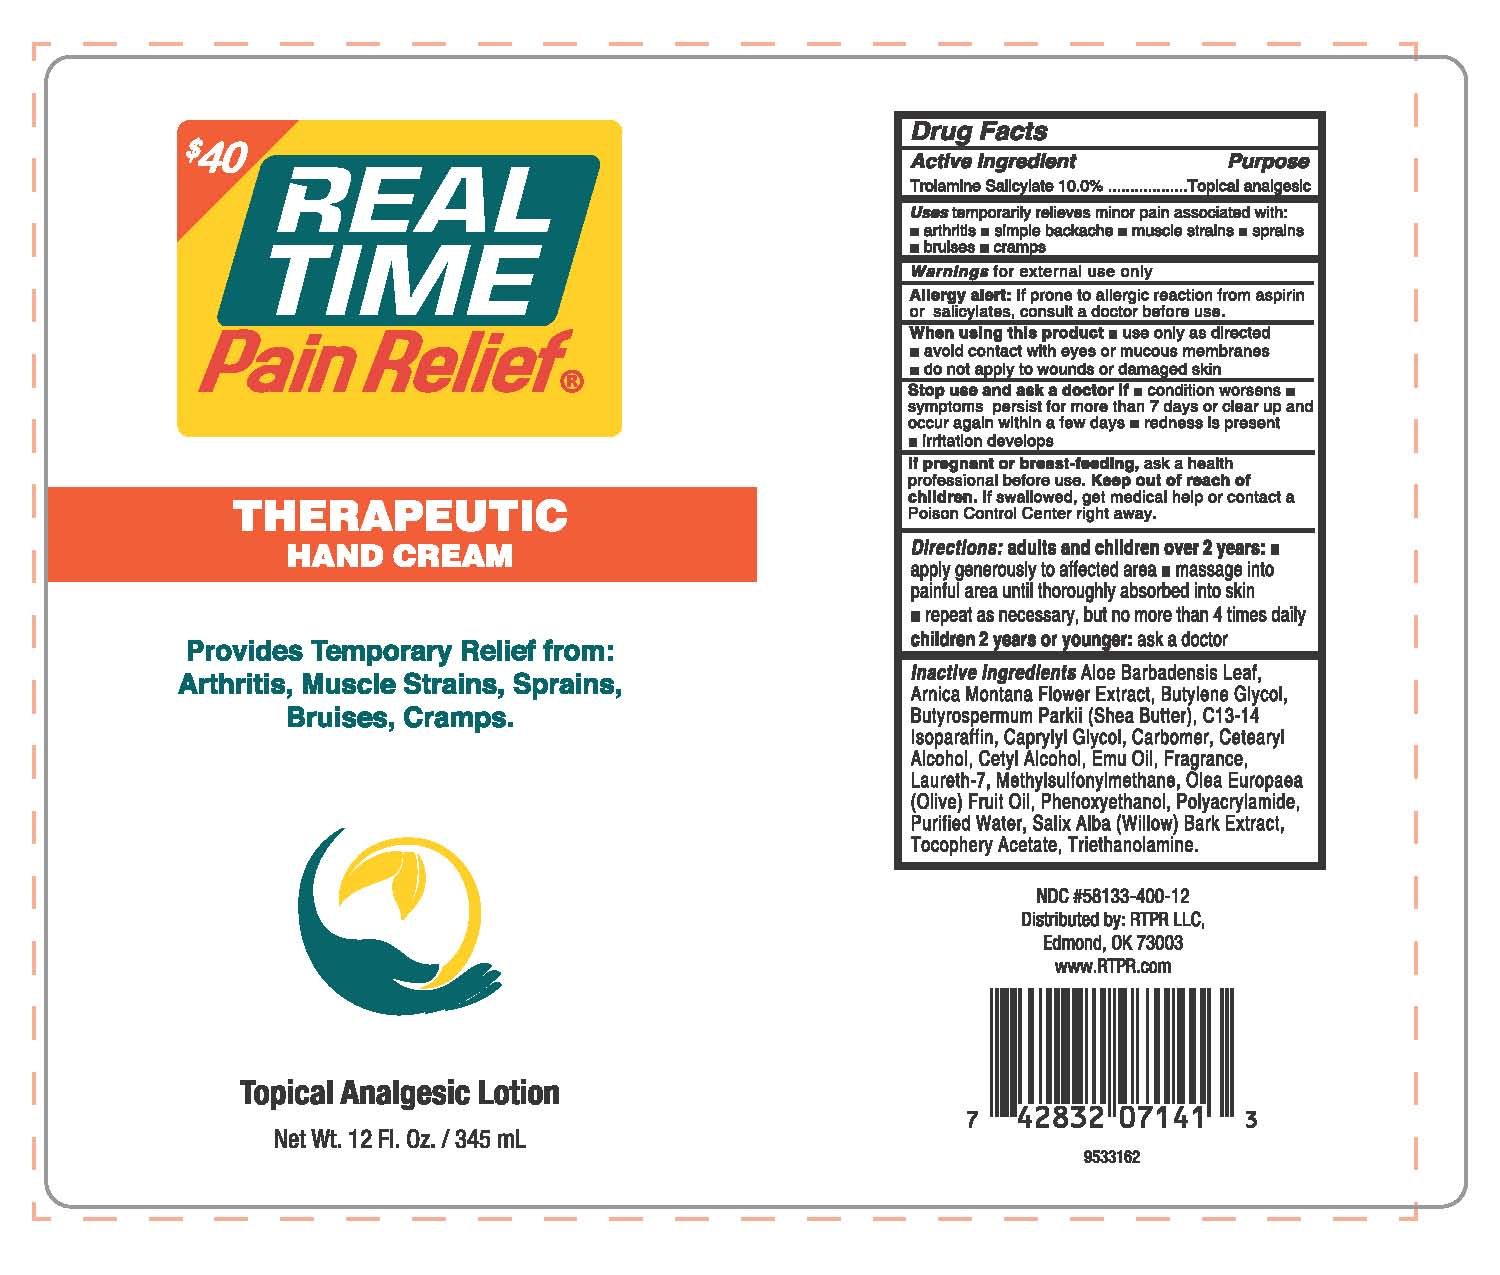 Real Time Pain Relief Therapeutic Hand Cream | Trolamine Salicylate 10% Lotion Breastfeeding